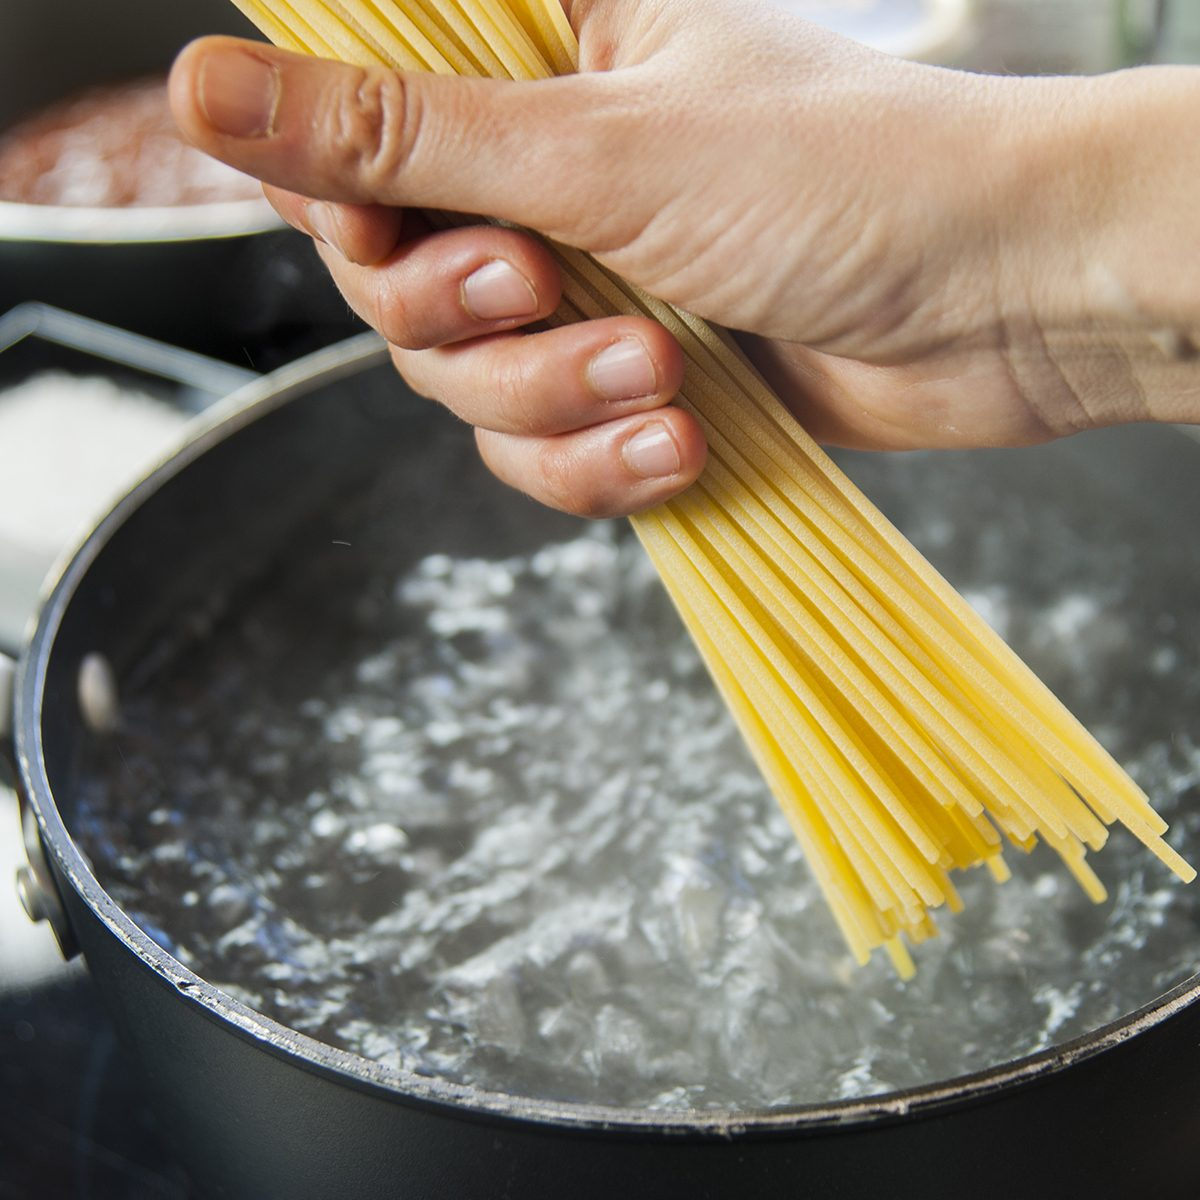 Cooking spaghetti in a pot with boiling water;